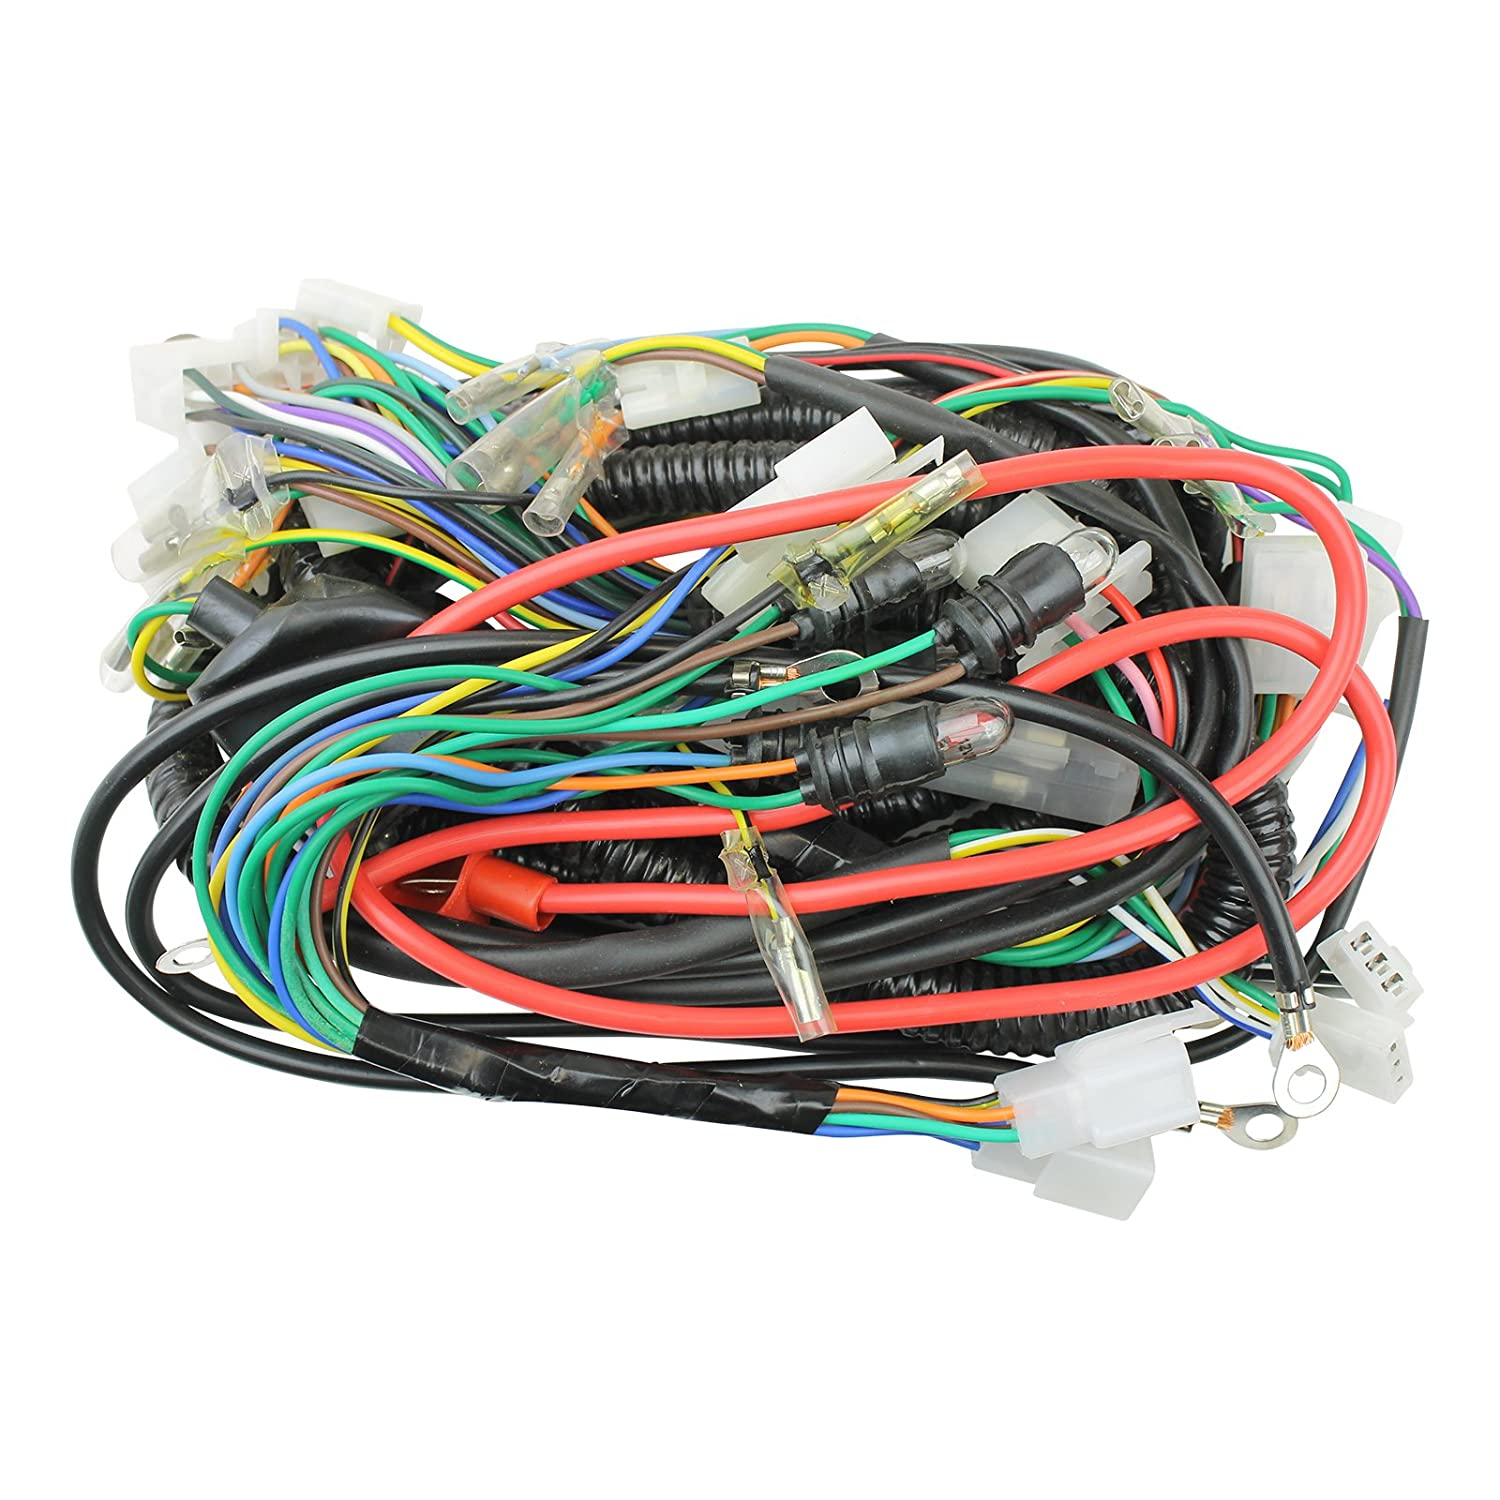 Vip Champion Scooter Wiring Harness Trusted Diagrams Wire Diagram Tao Amazon Com Taotao 50cc Complete New Honda